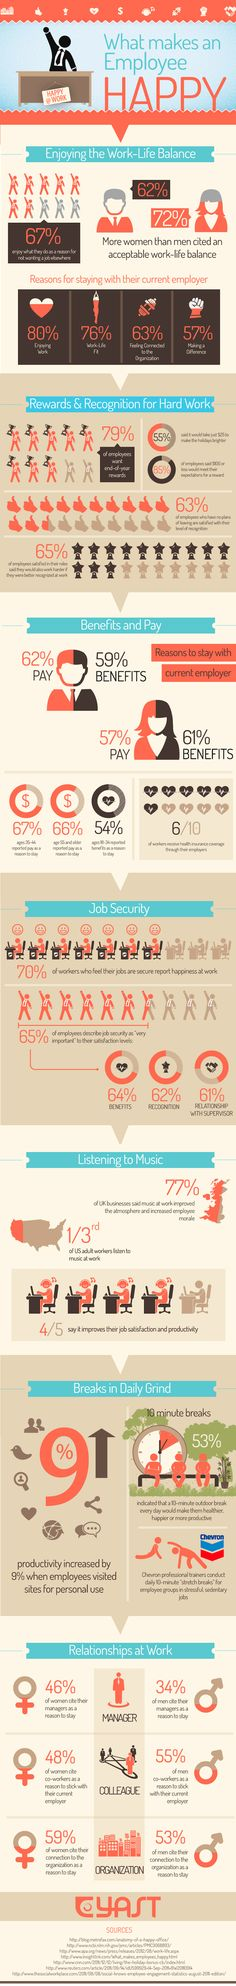 #Productivity, Morale, and Staff Retention #Infographic : 80% enjoy listening to music at work.